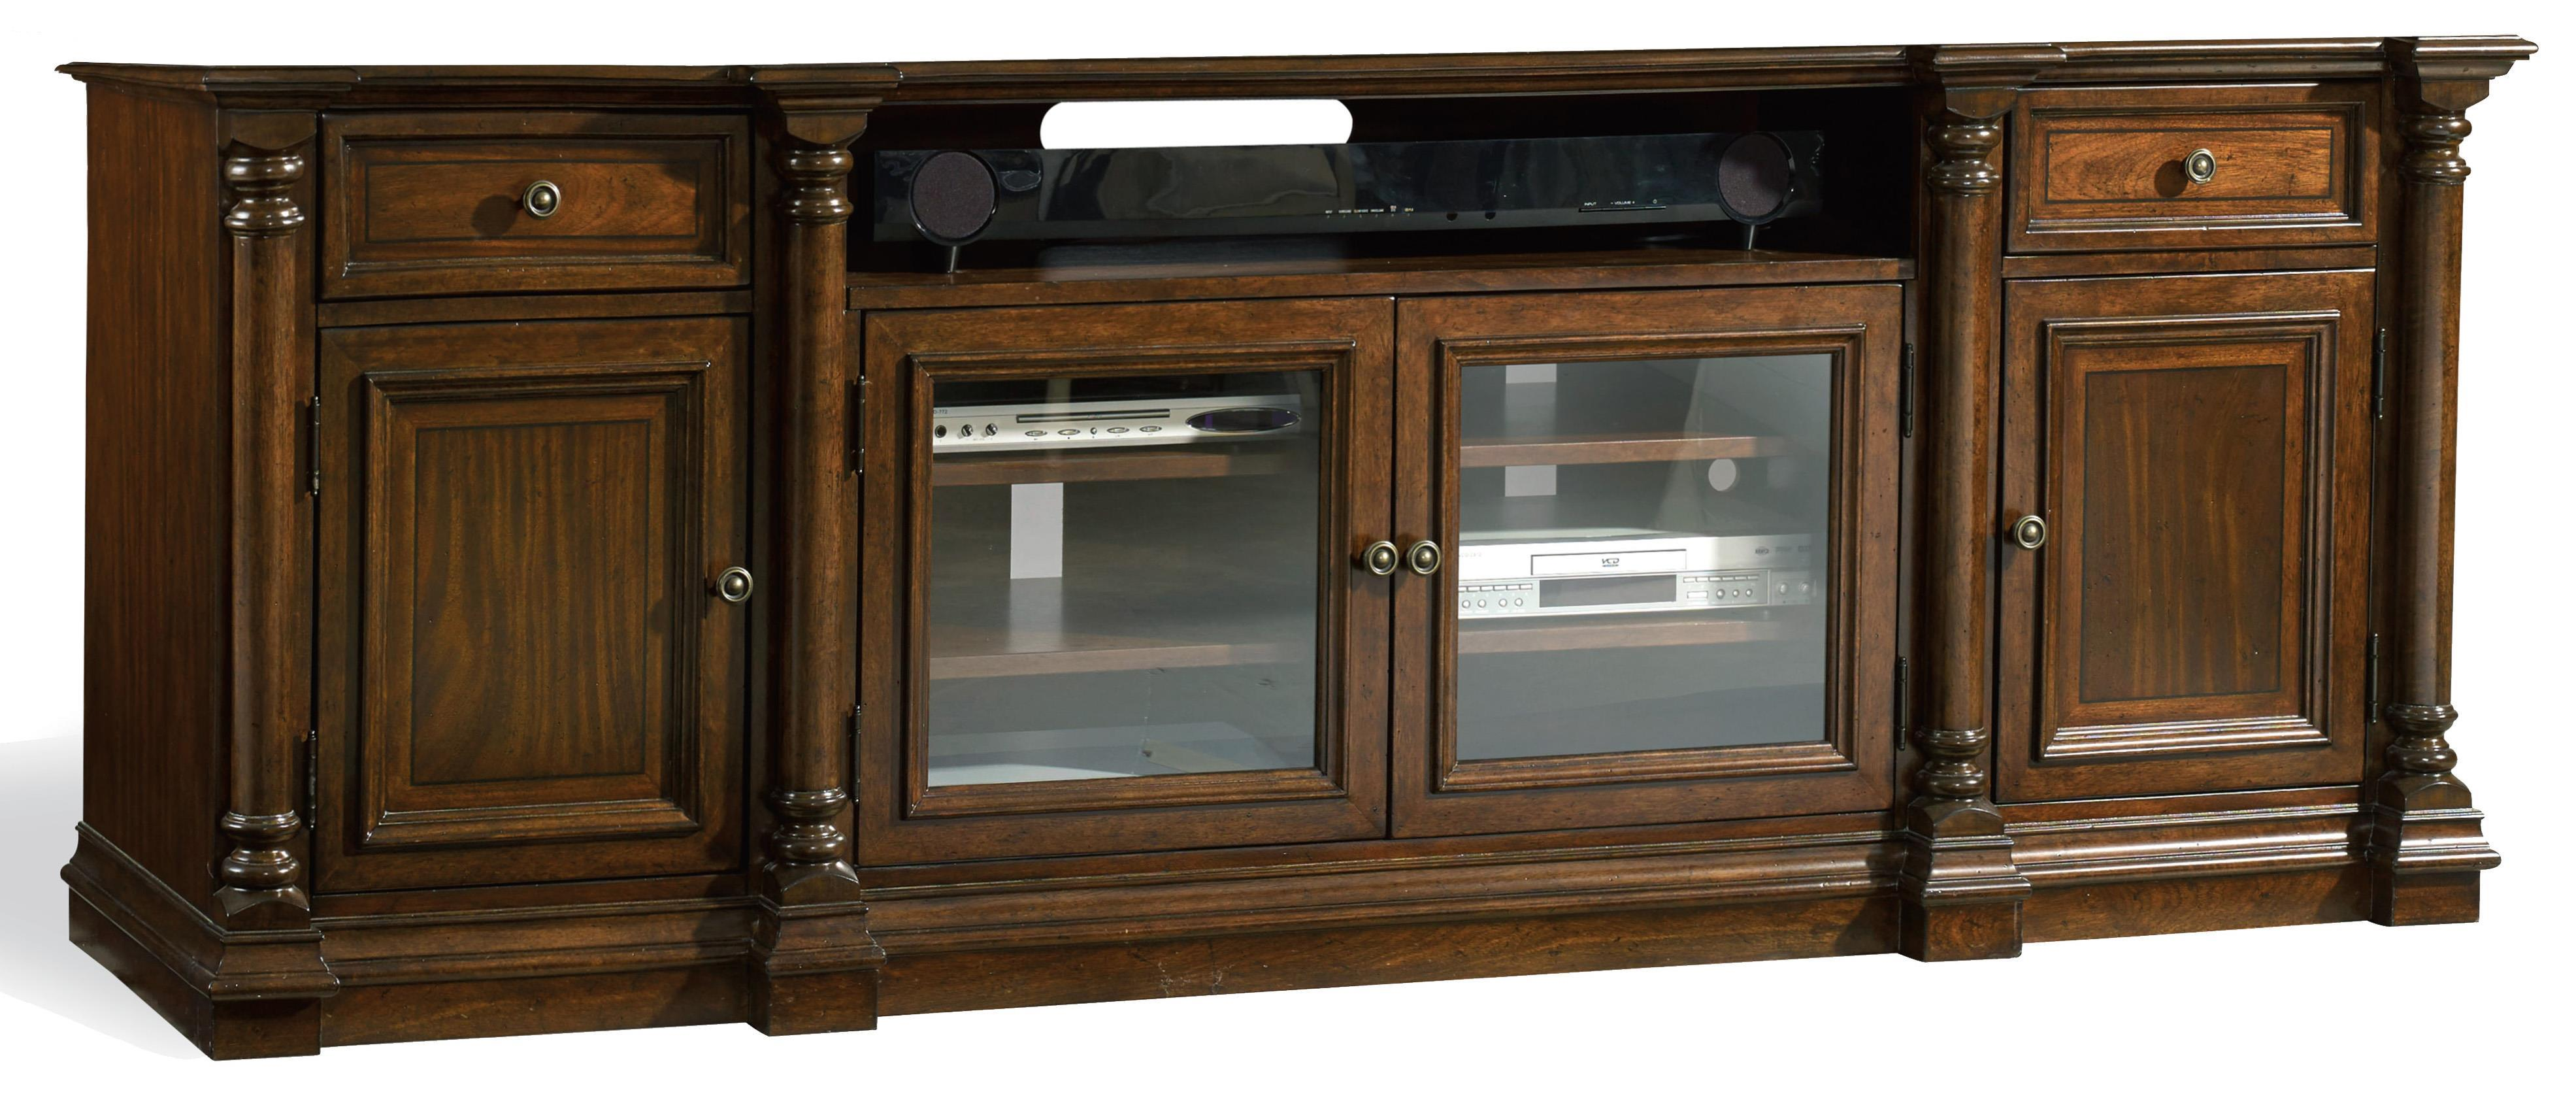 Hooker Furniture Leesburg Entertainment Console - Item Number: 5381-55484